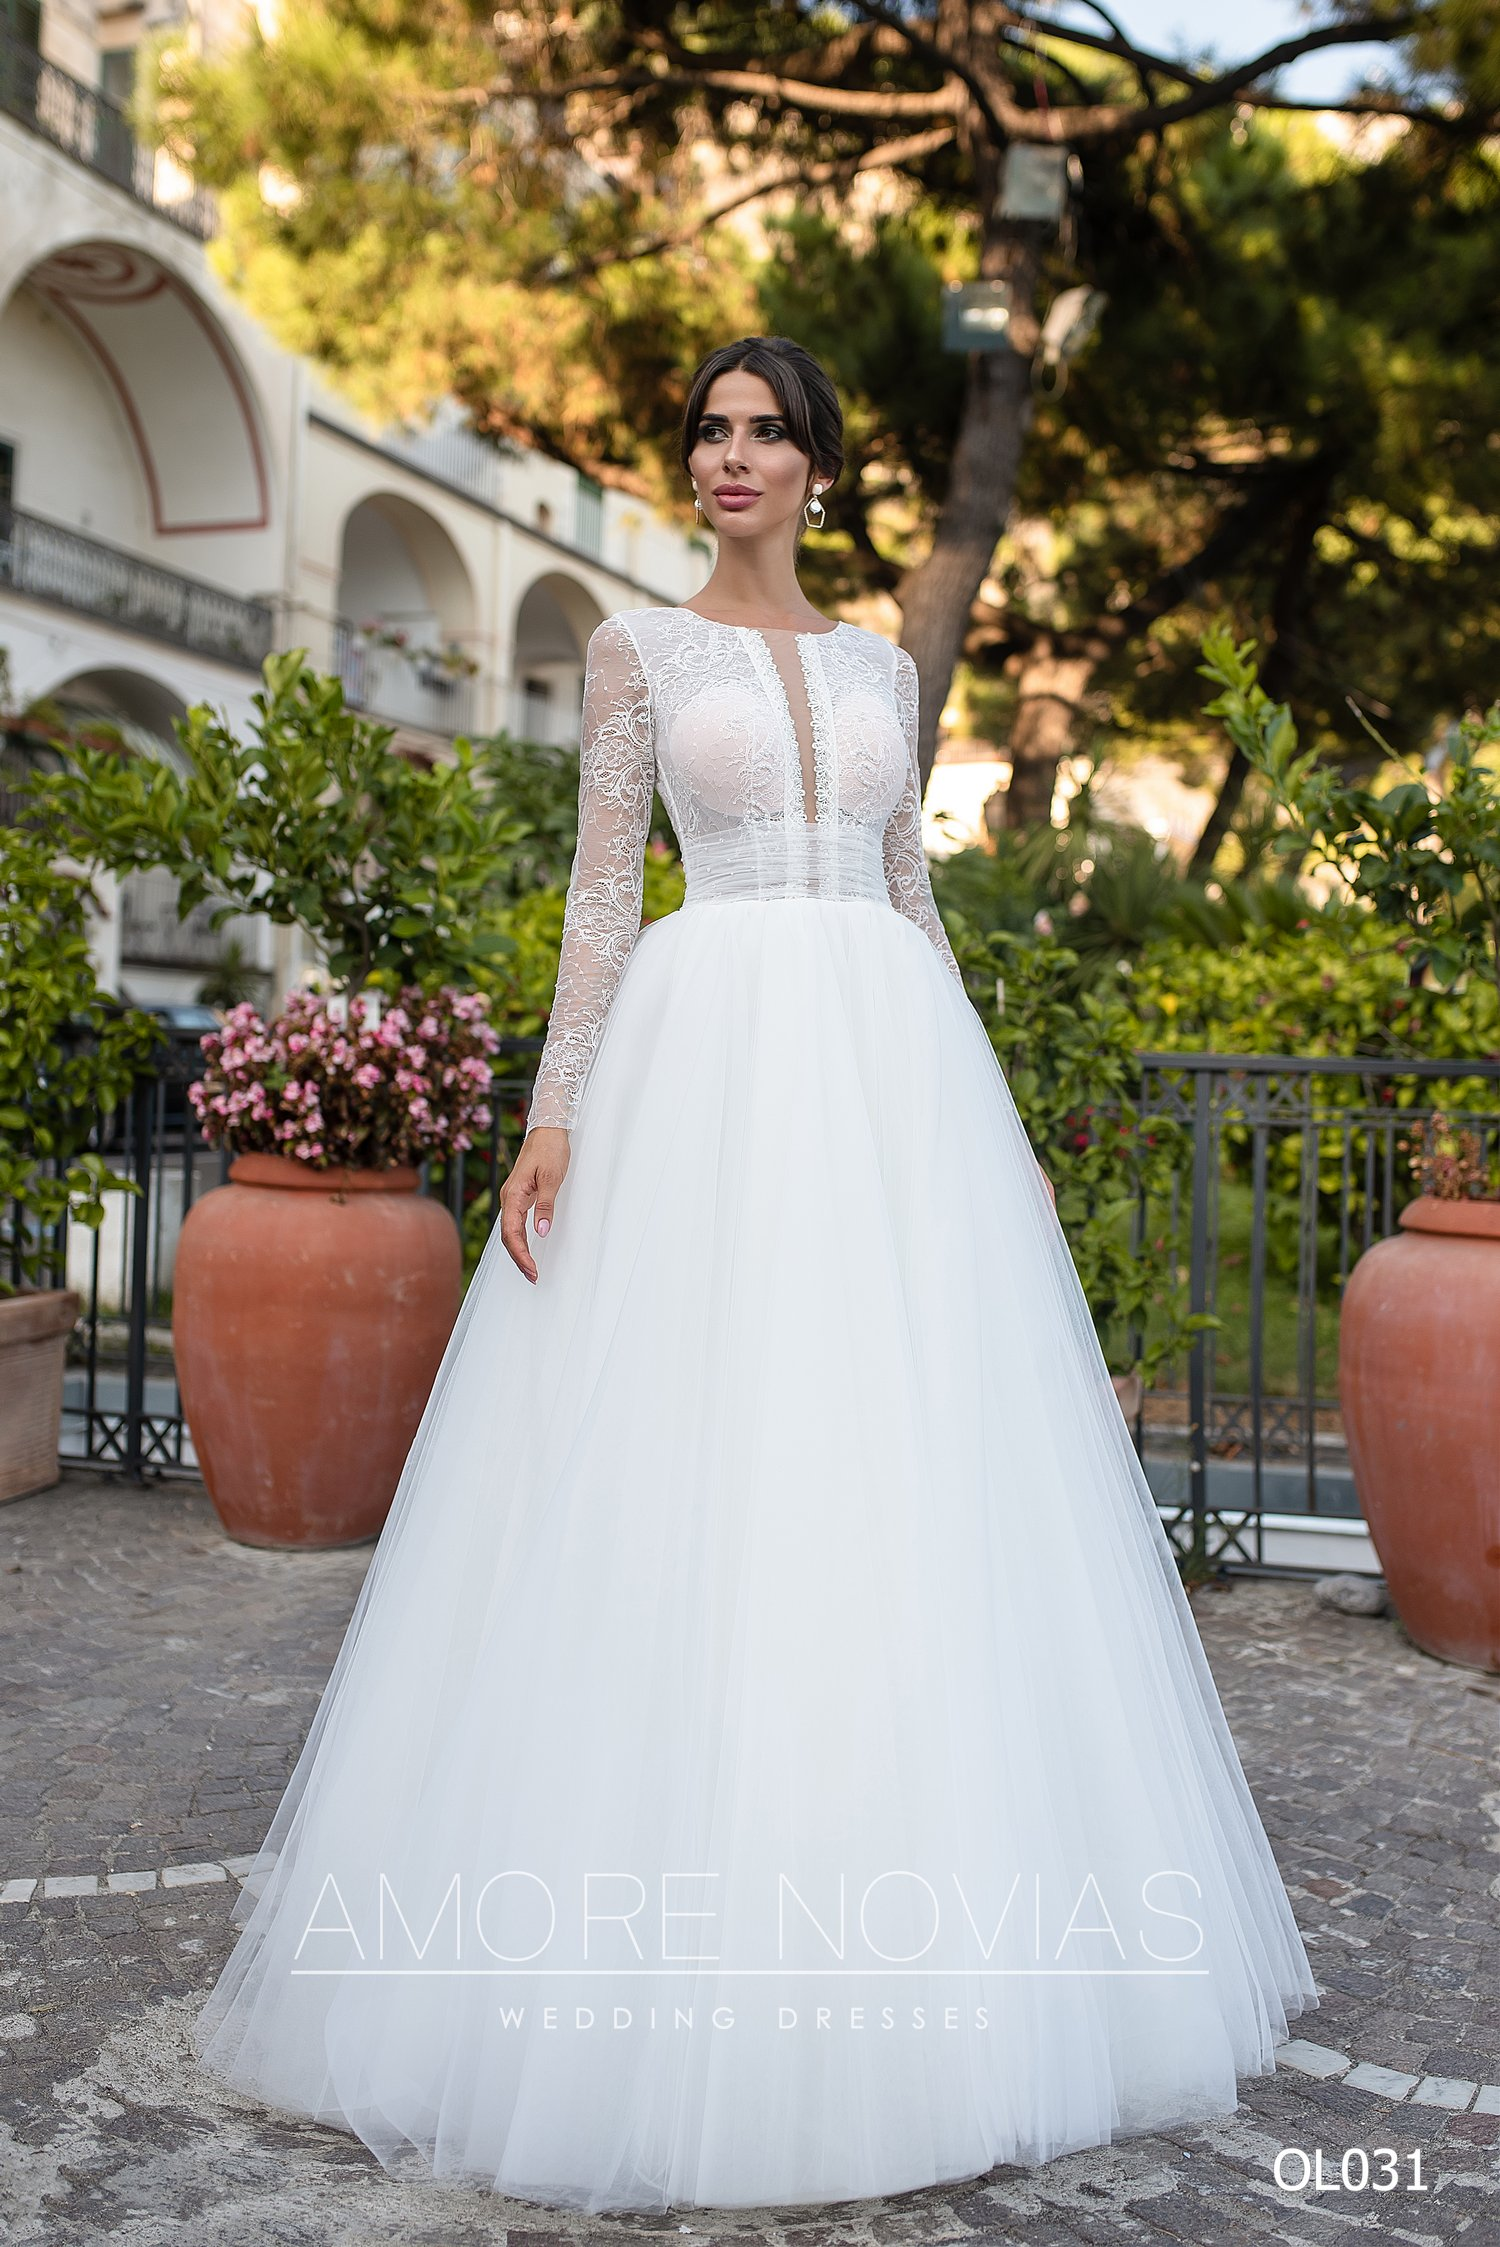 https://amore-novias.com/images/stories/virtuemart/product/OL031       (1).jpg